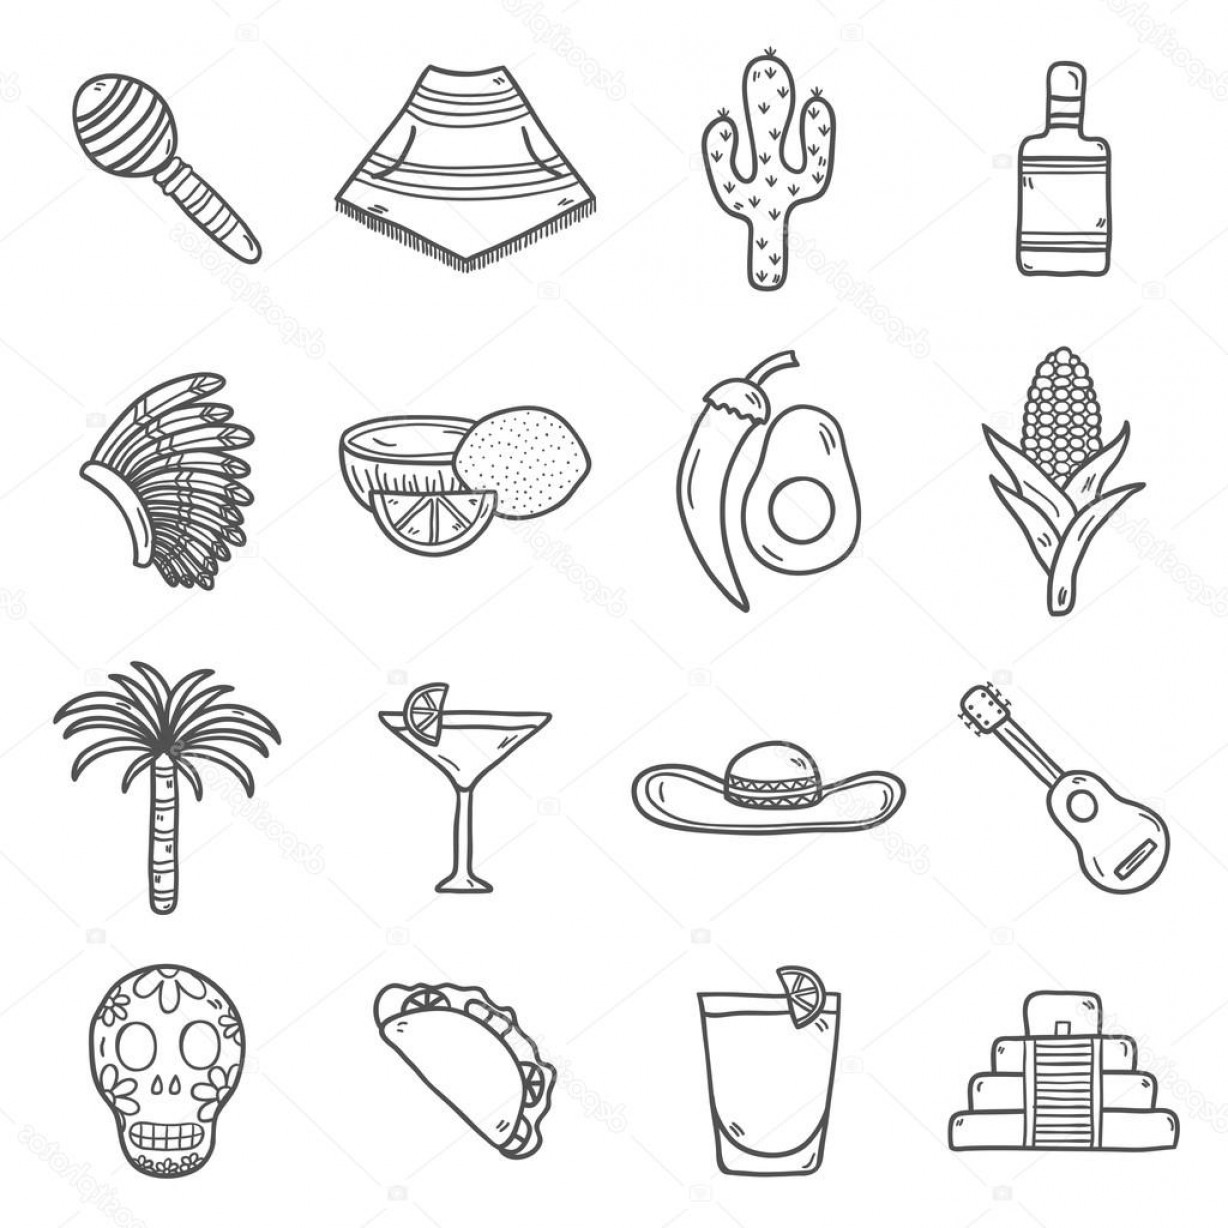 Sombrero Vector Outline: Stock Illustration Set Of Cute Hand Drawn